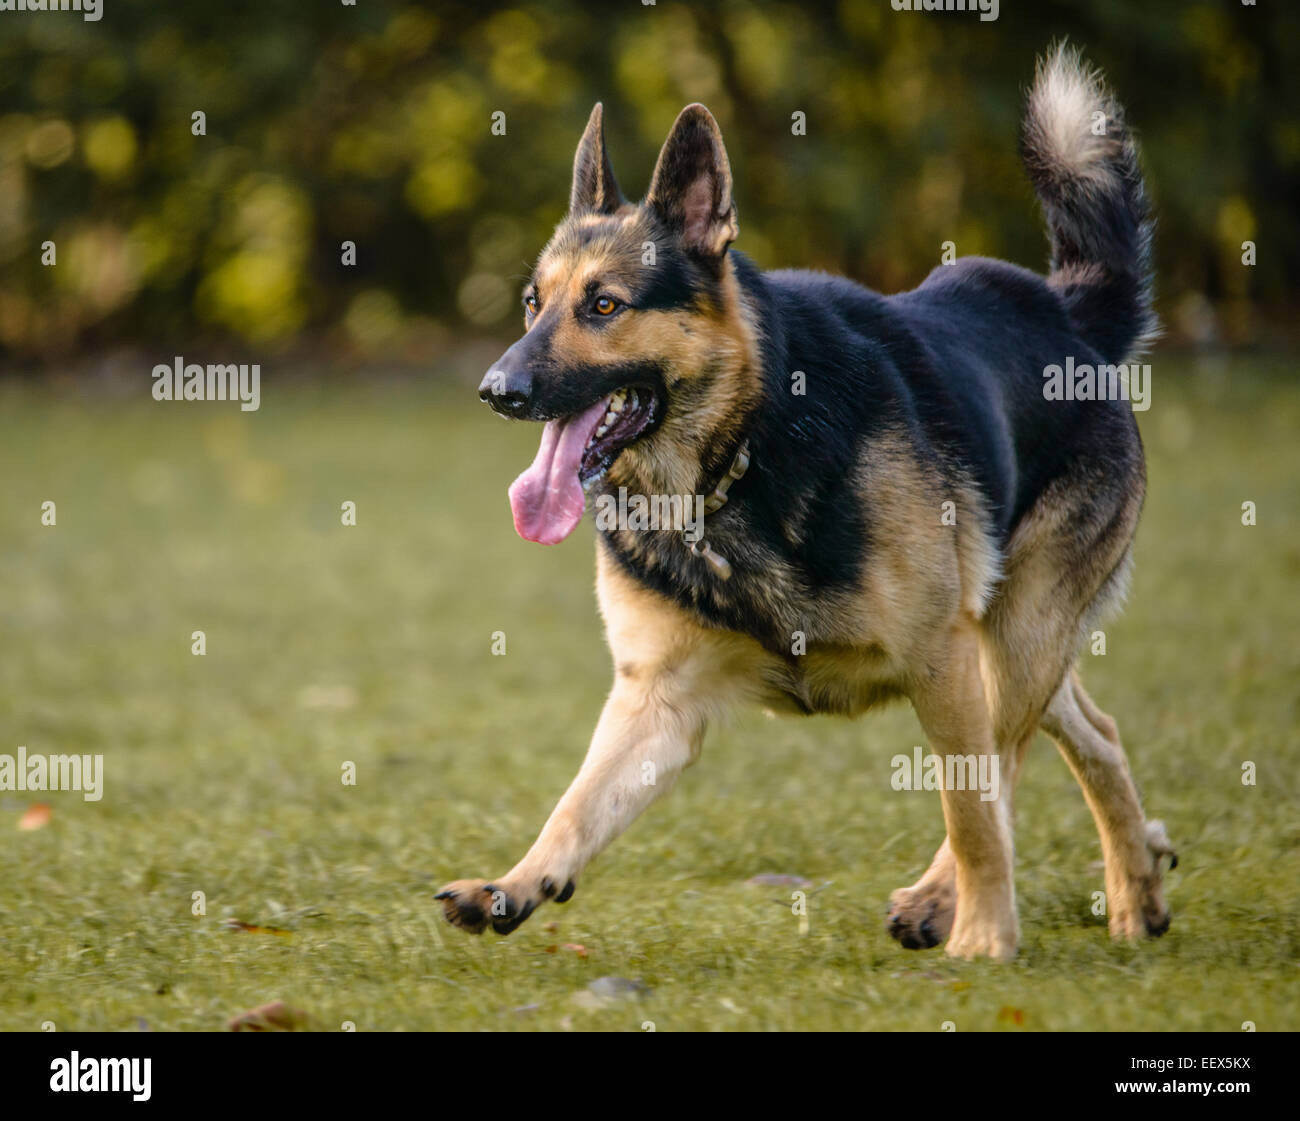 German Shepherd Running Stock Photo